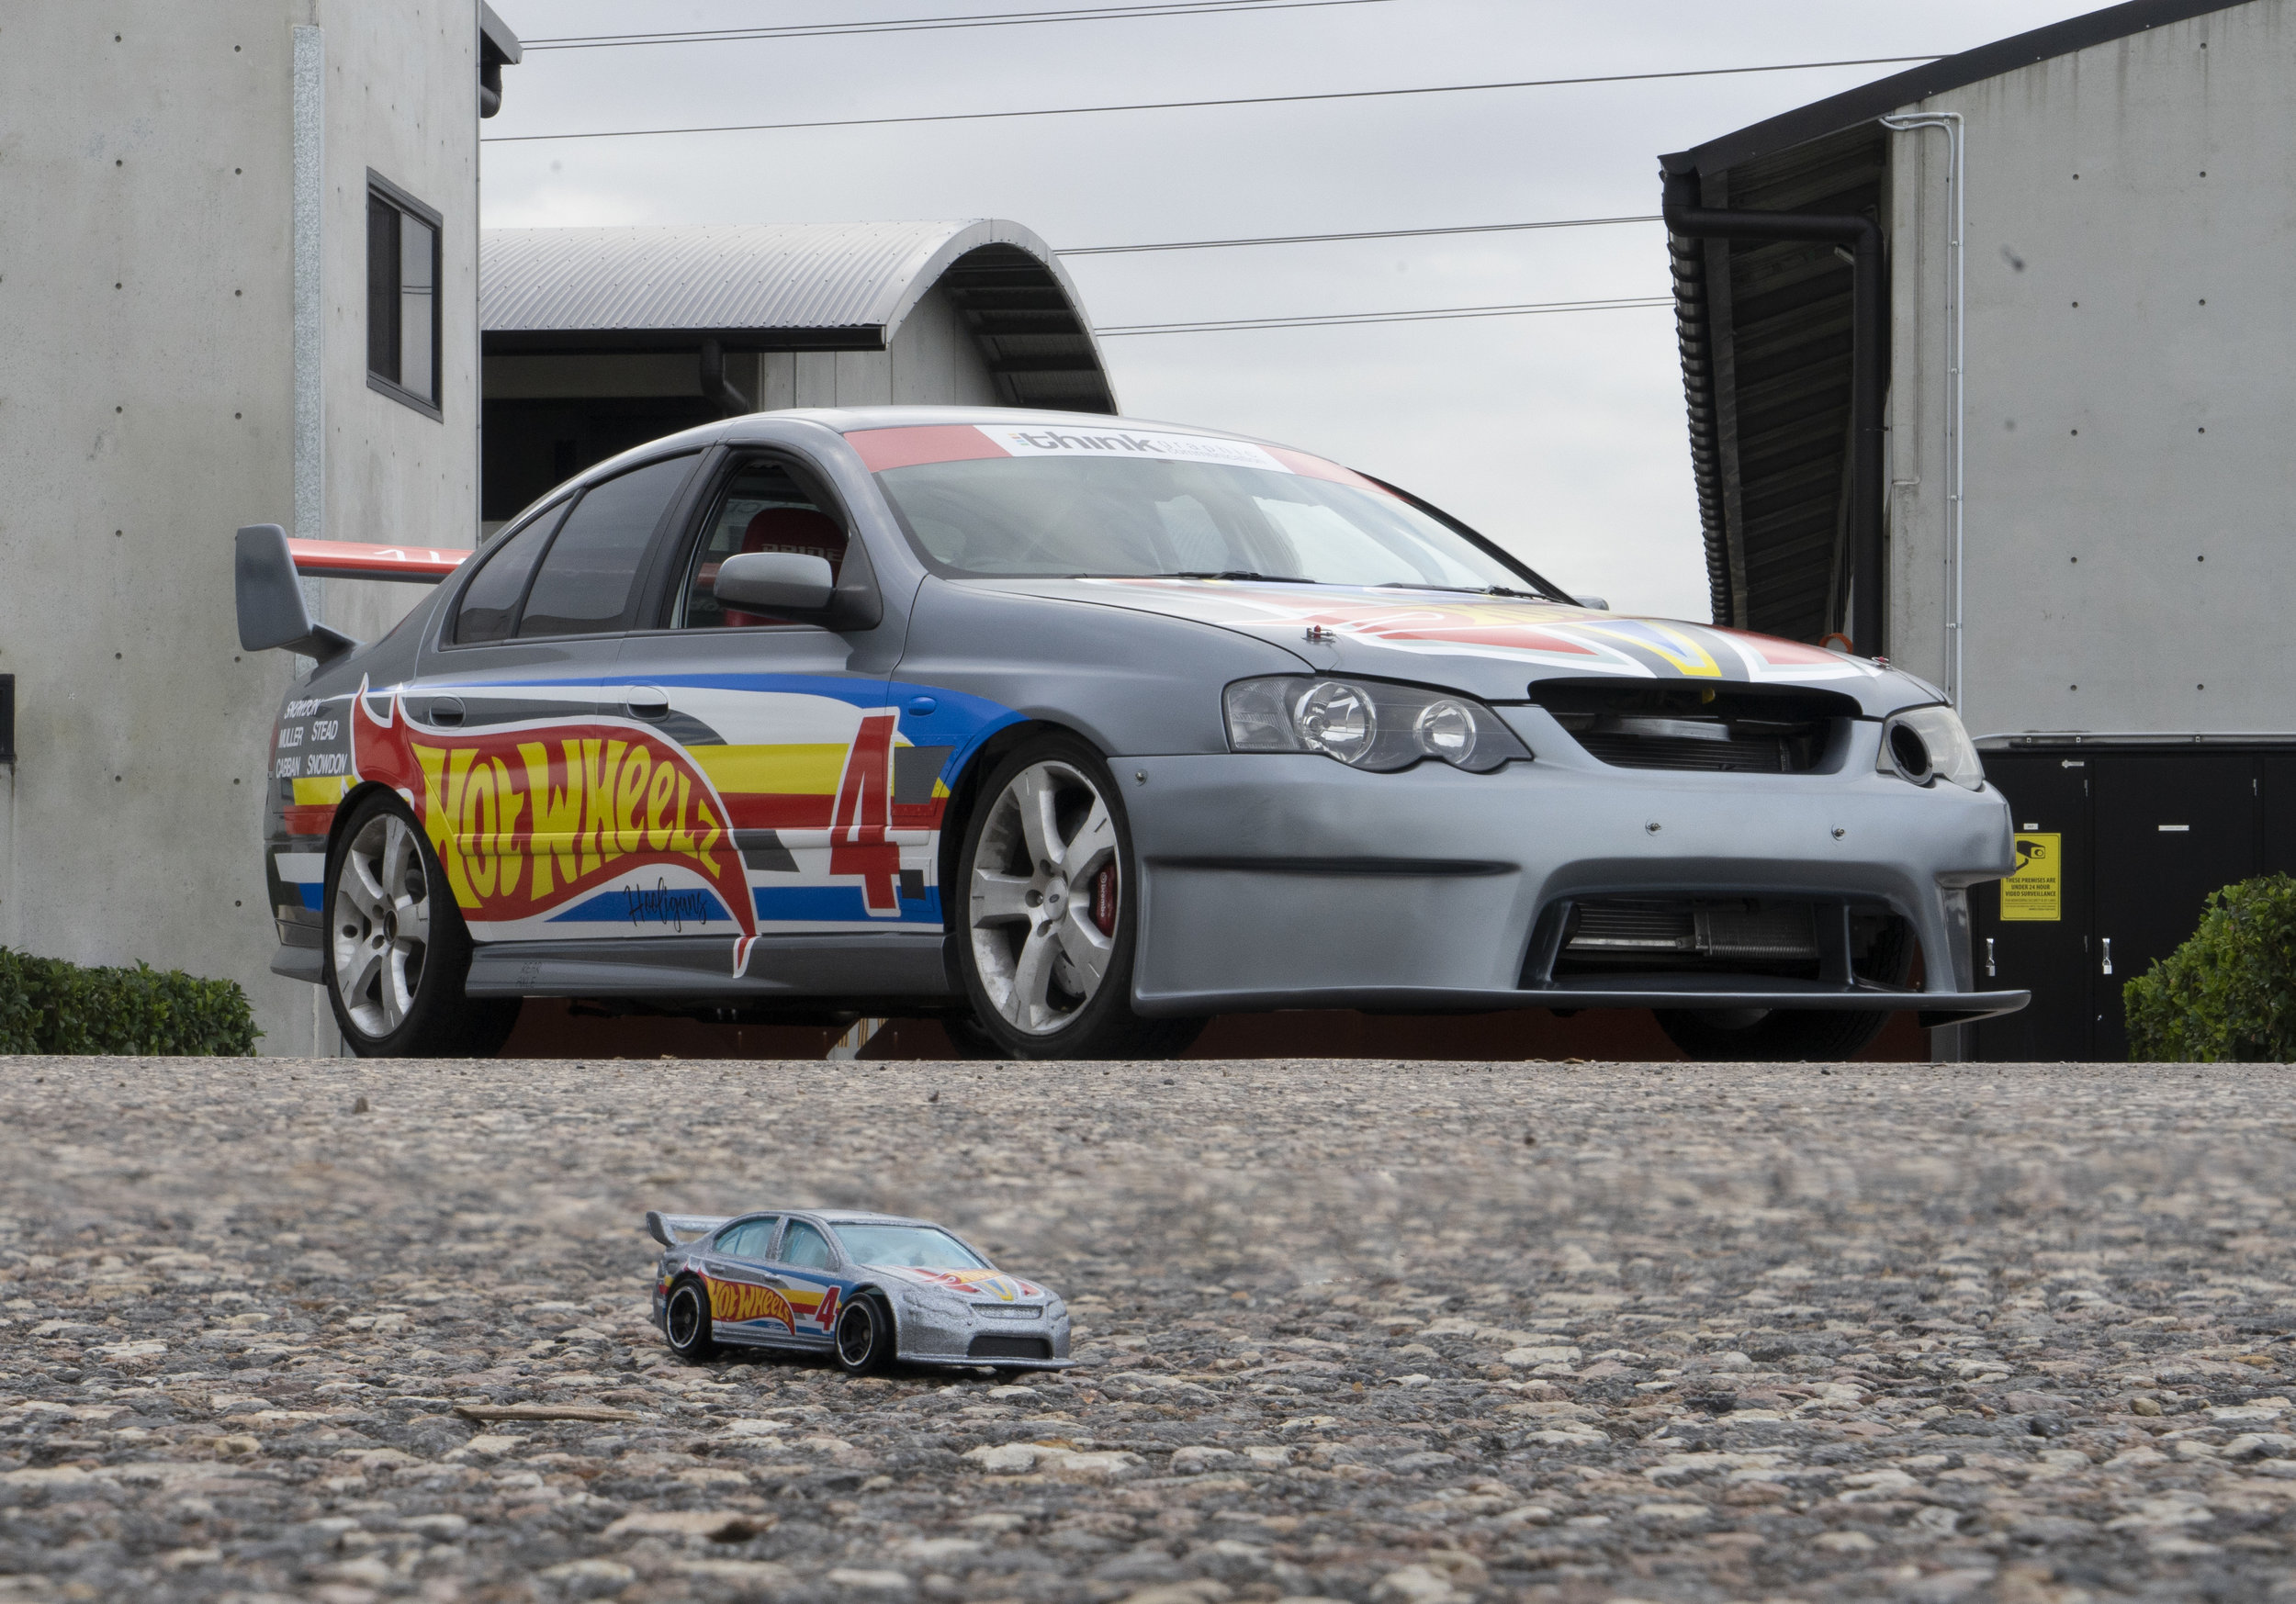 HotWheelz2 car wrap think graphic communication.jpg